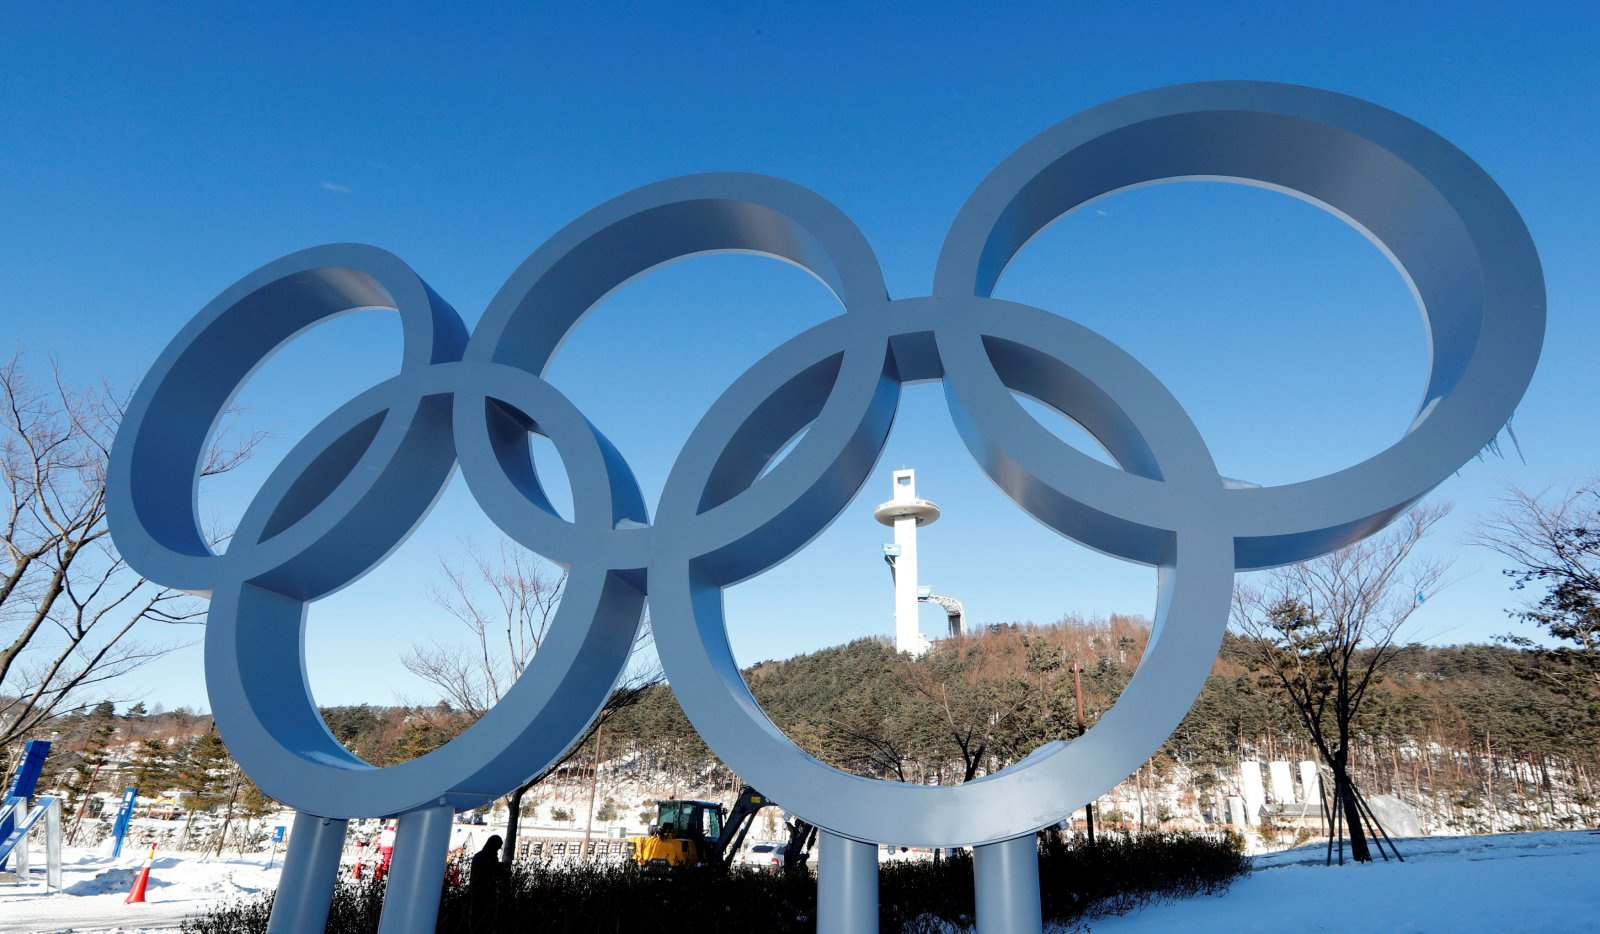 Olympic Rings in PyeonChang 2018